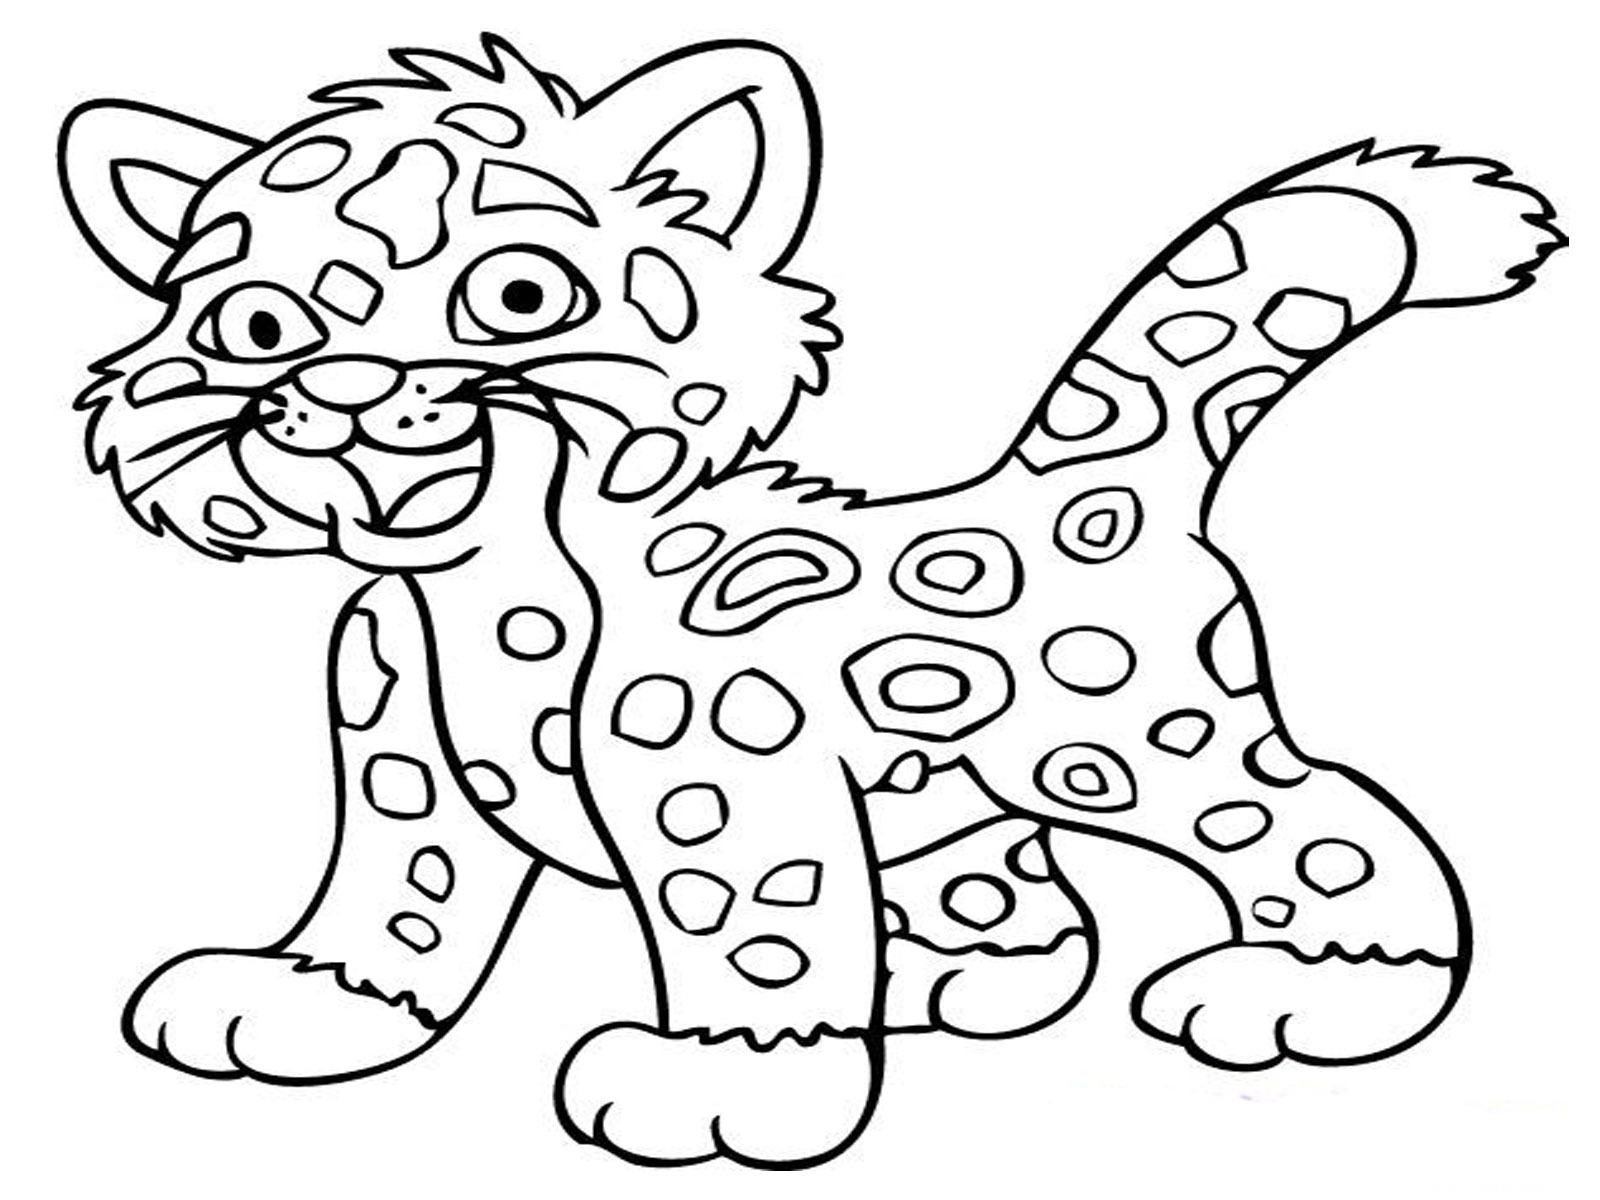 1600x1200 Coloring Pages Cool Coloring Pages Draw Easy Animals Coloring